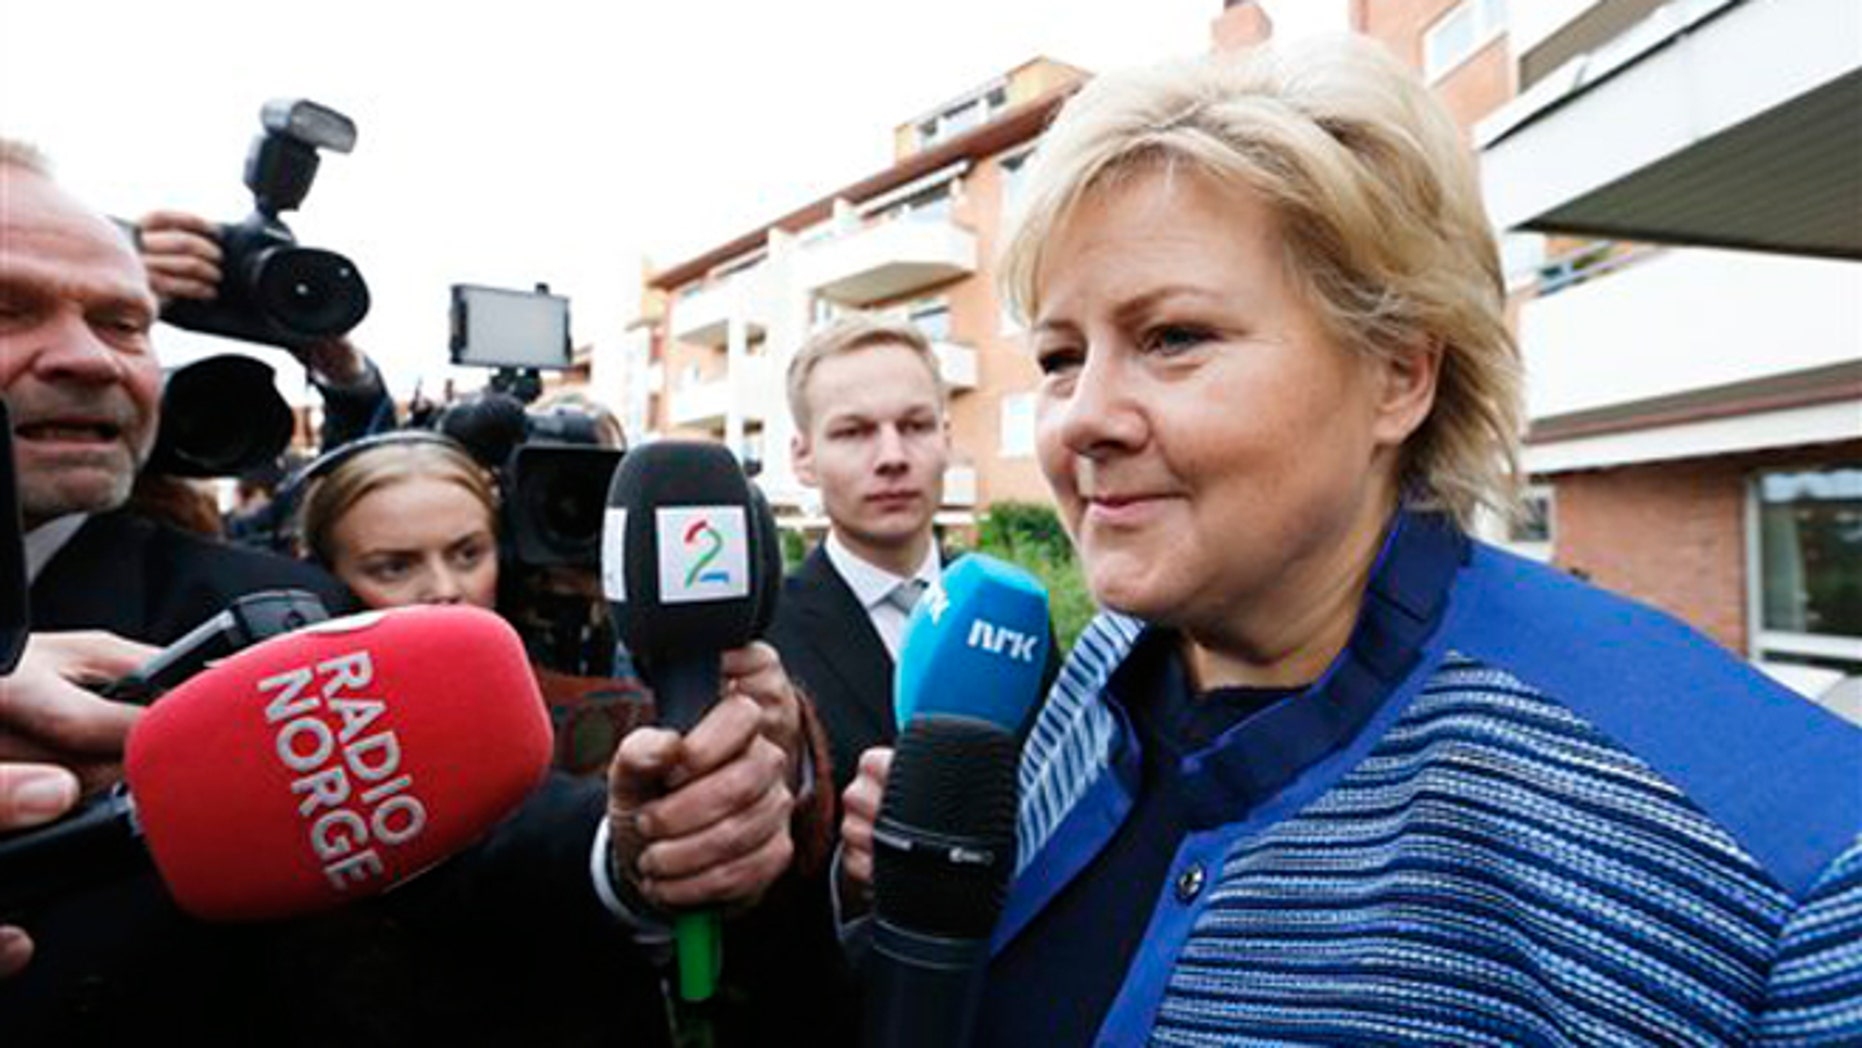 "Sept. 10, 2013: Chairman of the Conservative Party in Norway, Erna Solberg, meets the press outside the block of apartments where she lives in Oslo the day after she and her party returned a resounding victory in the general elections. Solberg nicknamed ""Iron Erna"" will become Norway's new prime minister as the leader of a center-right coalition government likely including an anti-immigration party."